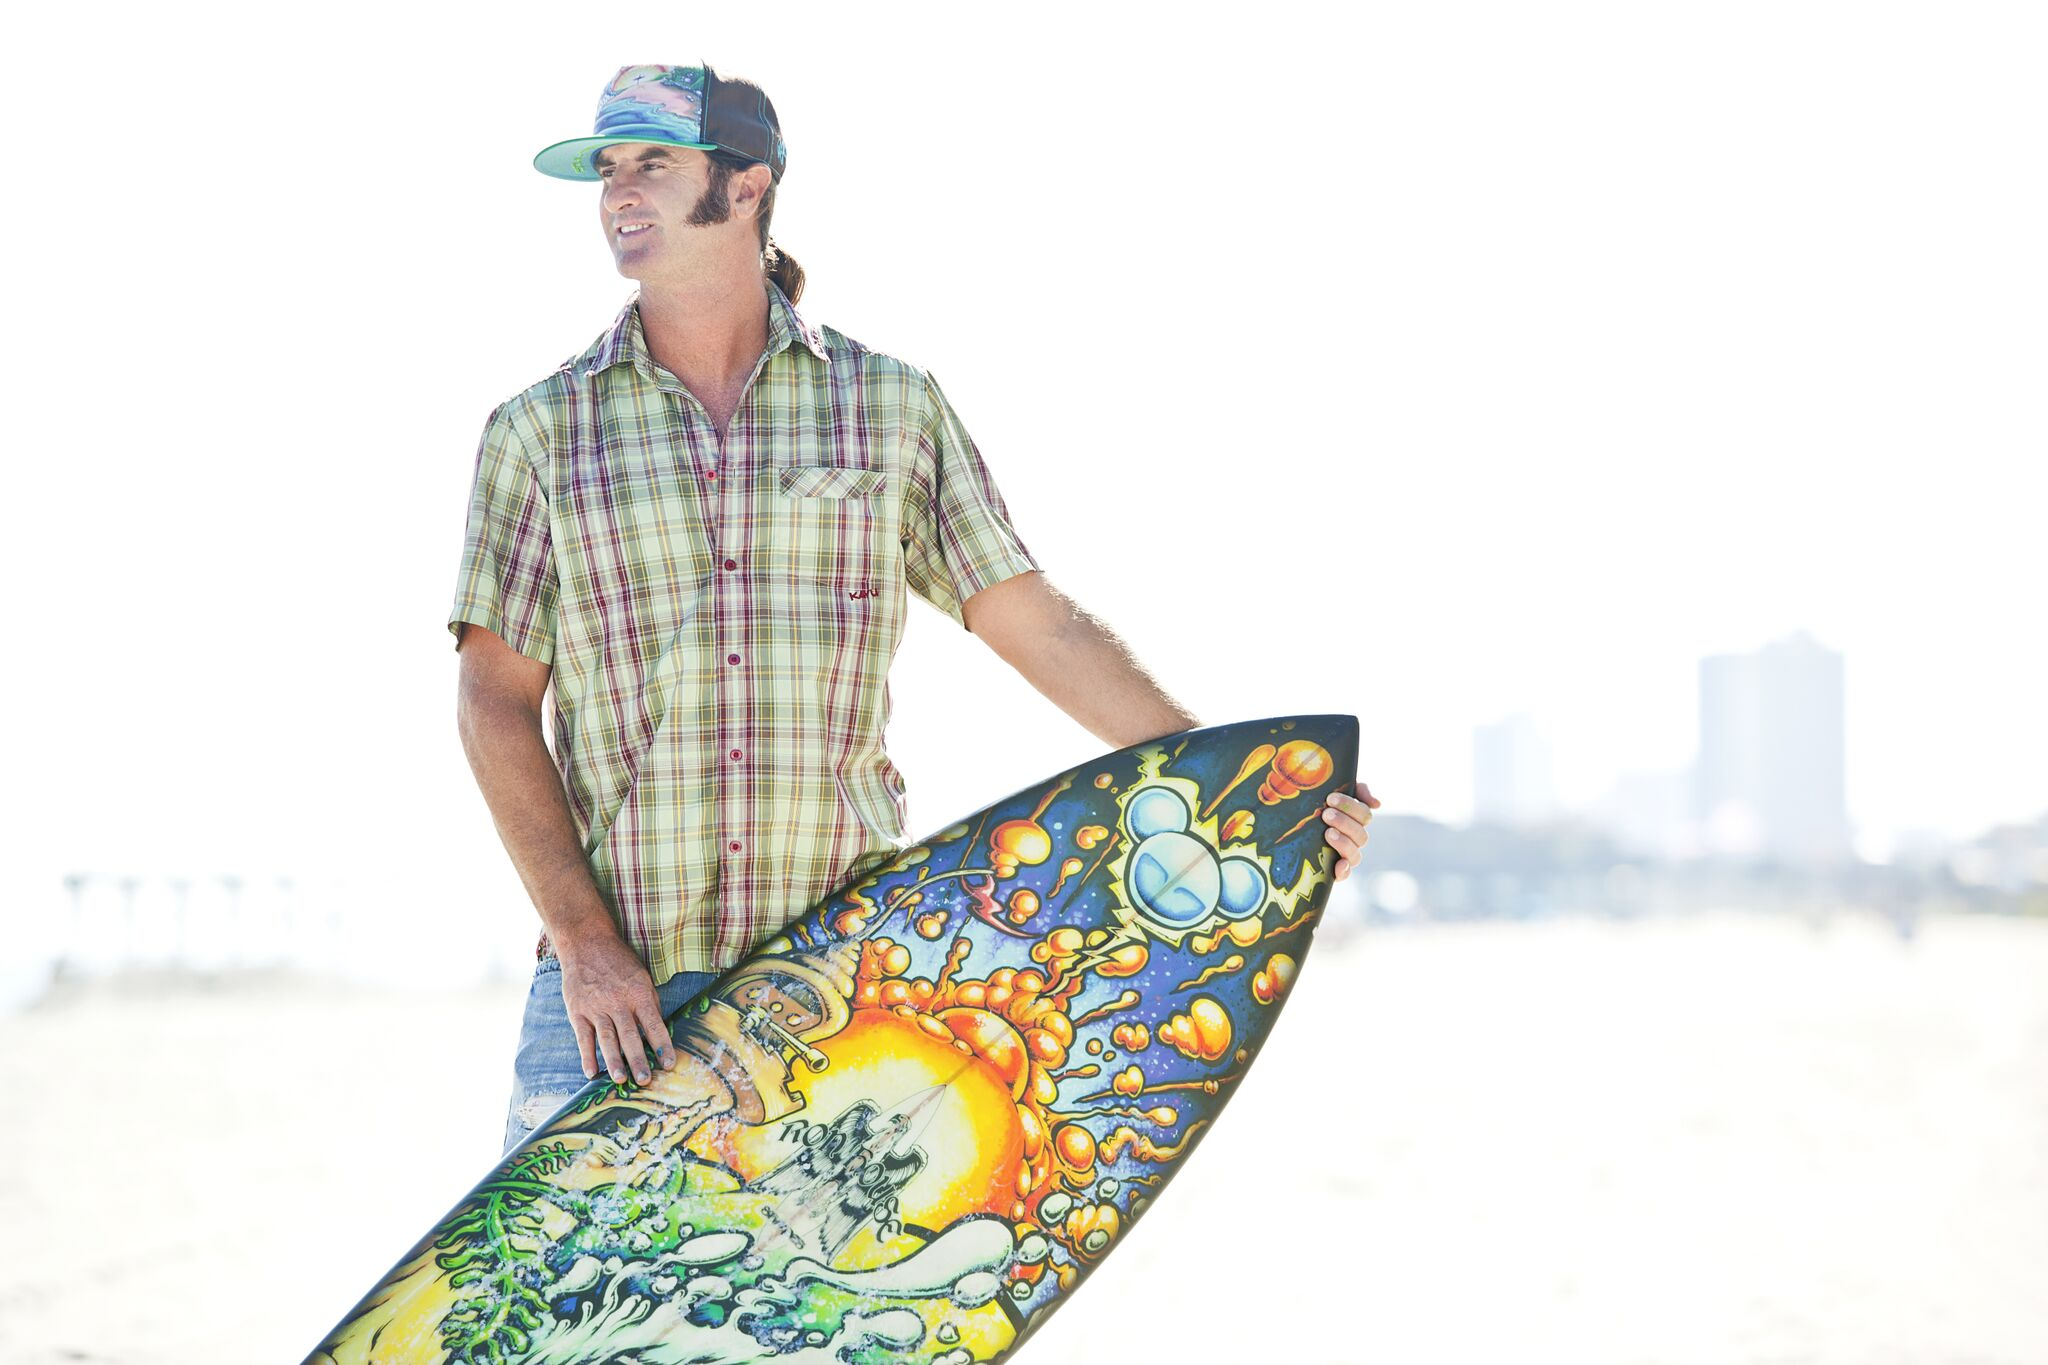 Drew Brophy and surfboard on beach Photo by Scott Smallin preview